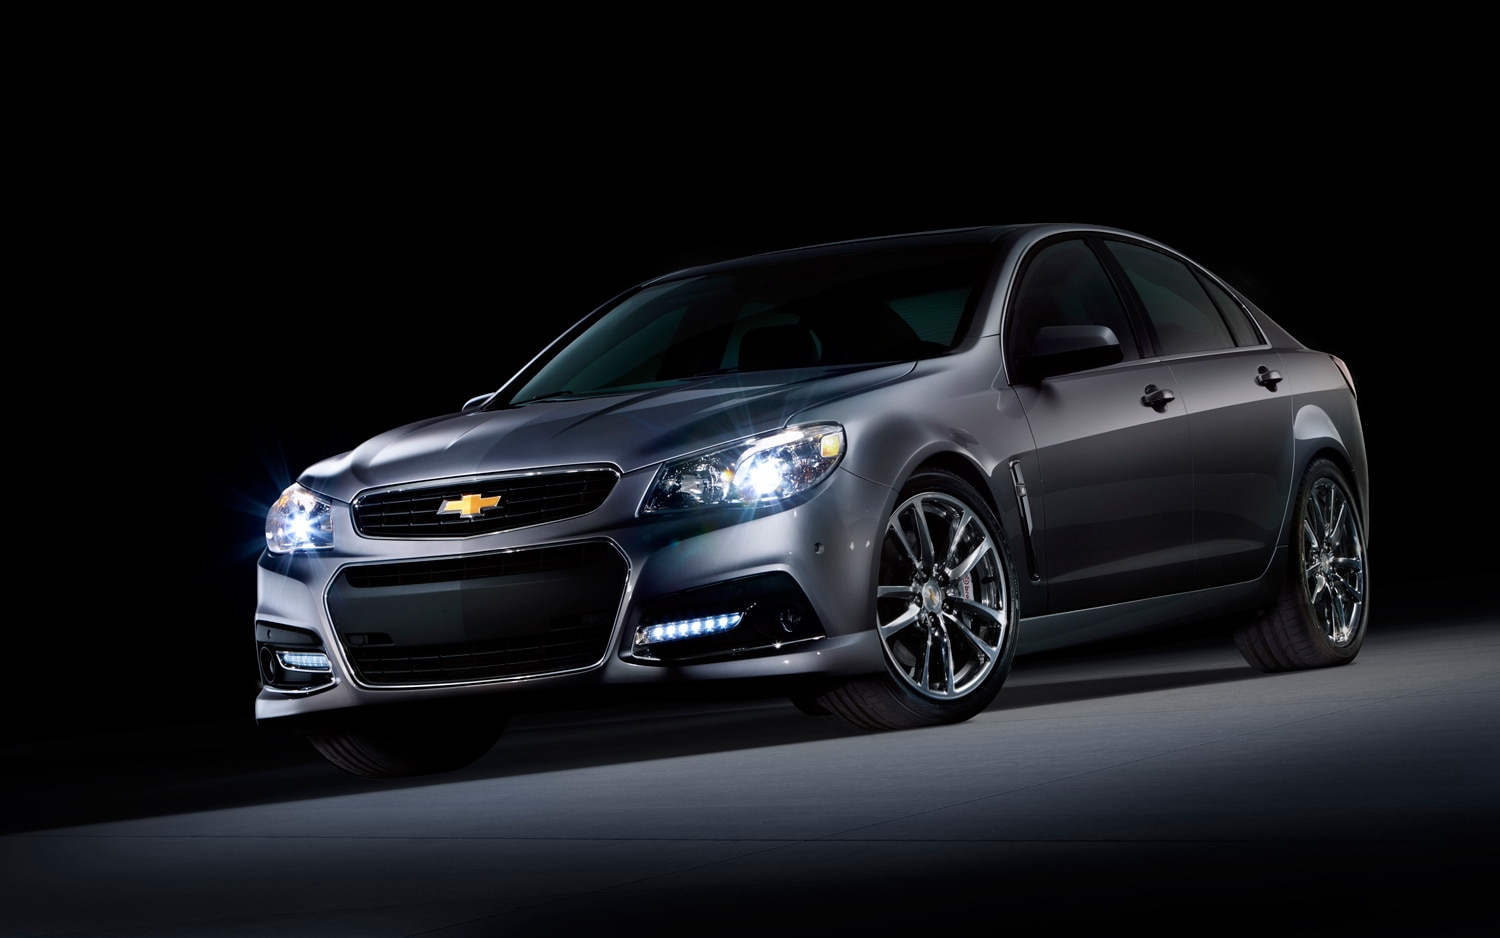 2014 Chevrolet SS Front Left View11